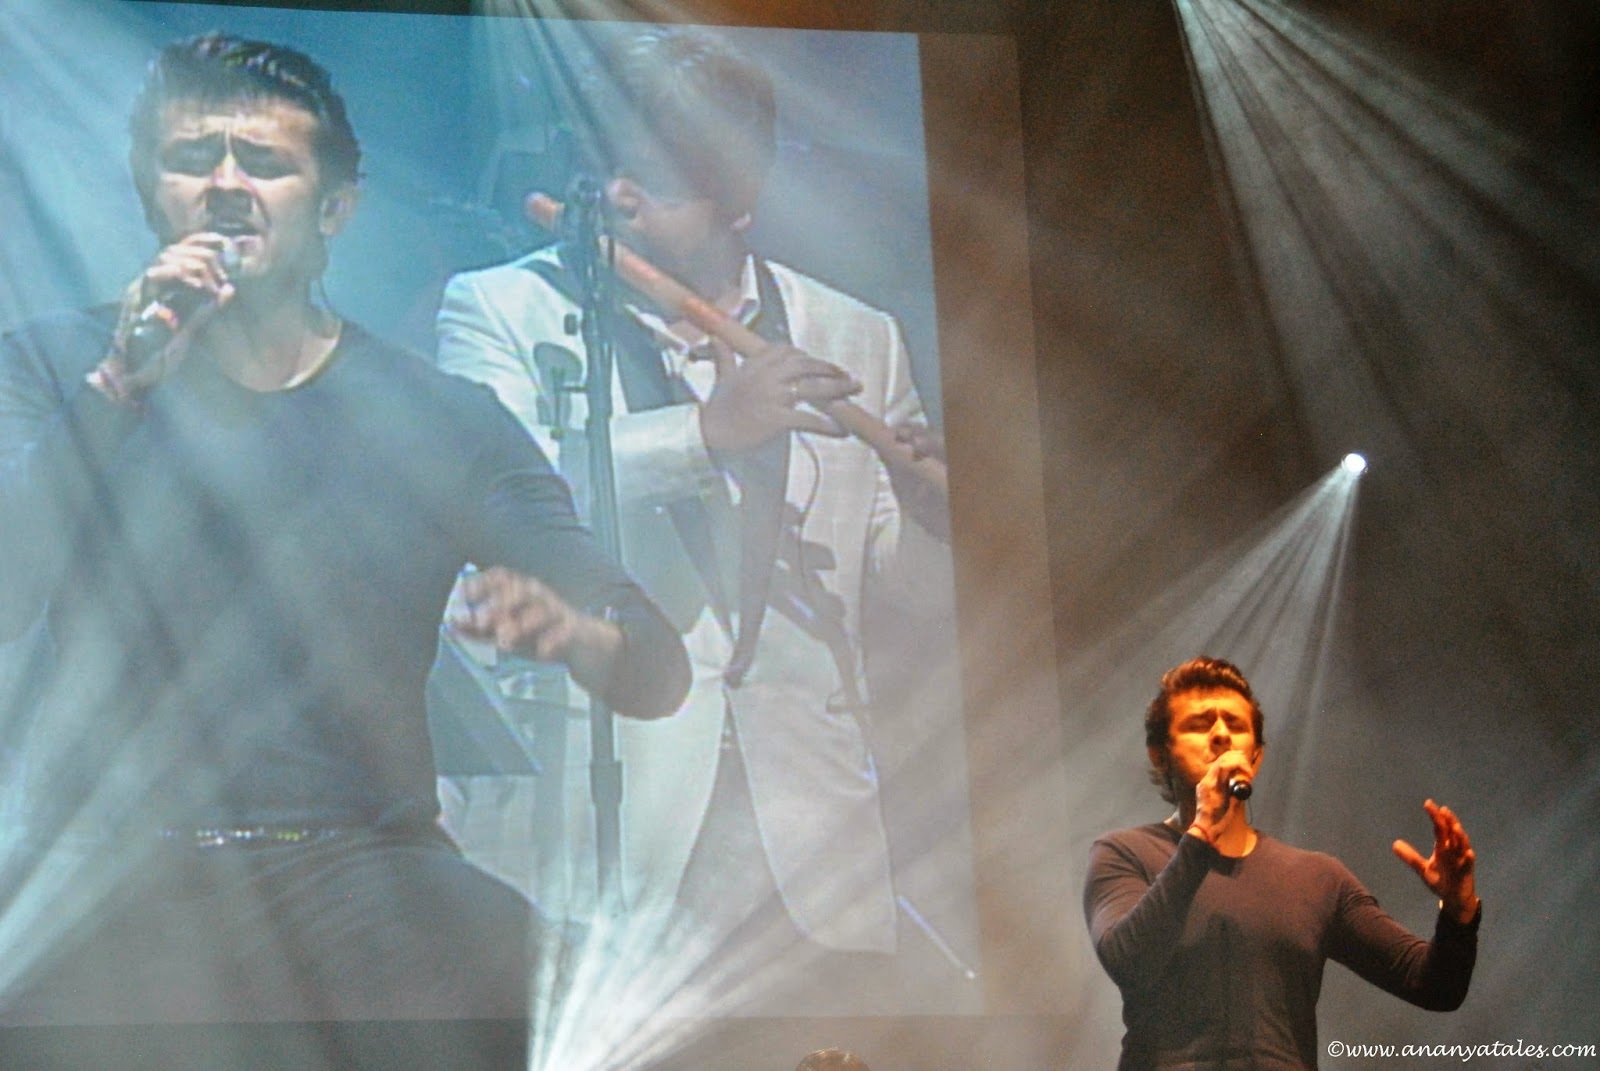 reviews of sonu nigam concert, Sonu nigam Usa performances, klose to my soul by sonu nigam, sankara eye foundation, indian singer in usa